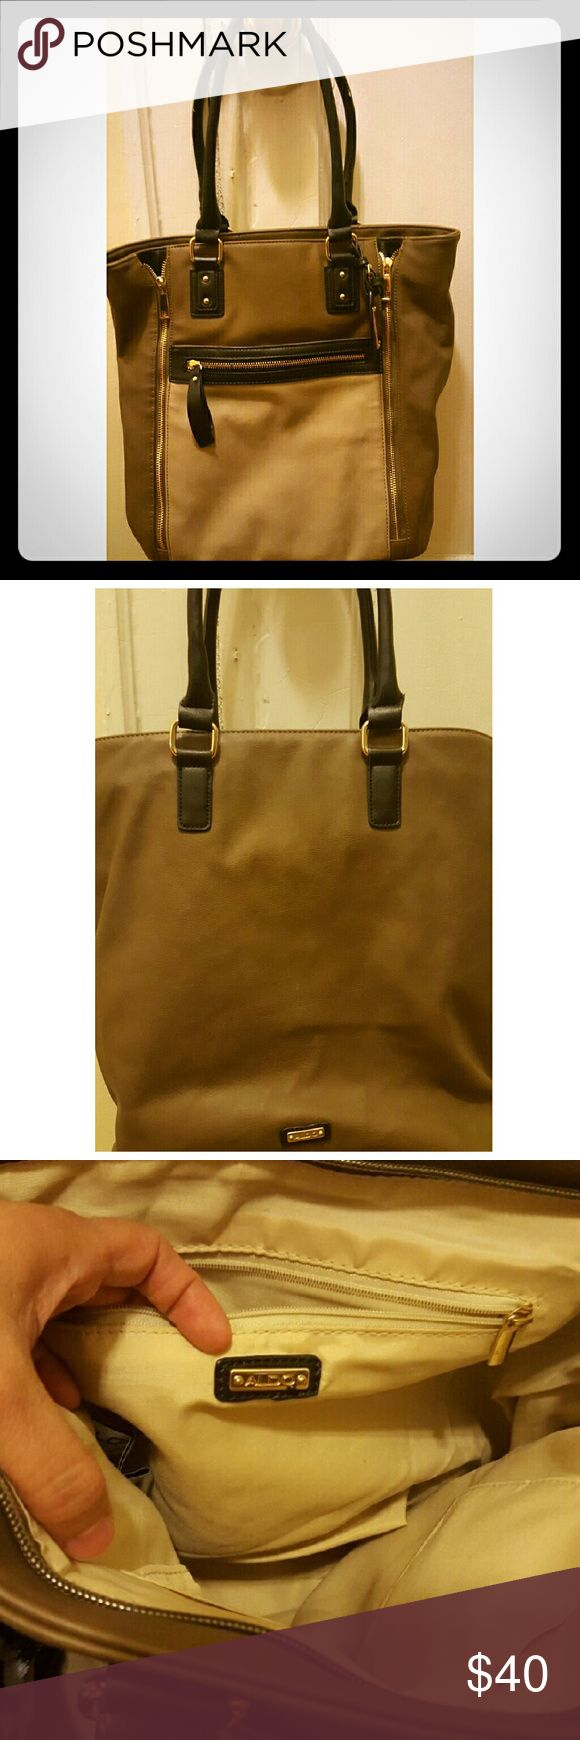 Aldo tote Very nice leather Aldo tote bag, large size, very good quality but have a very little chip on the handle Aldo Bags Totes